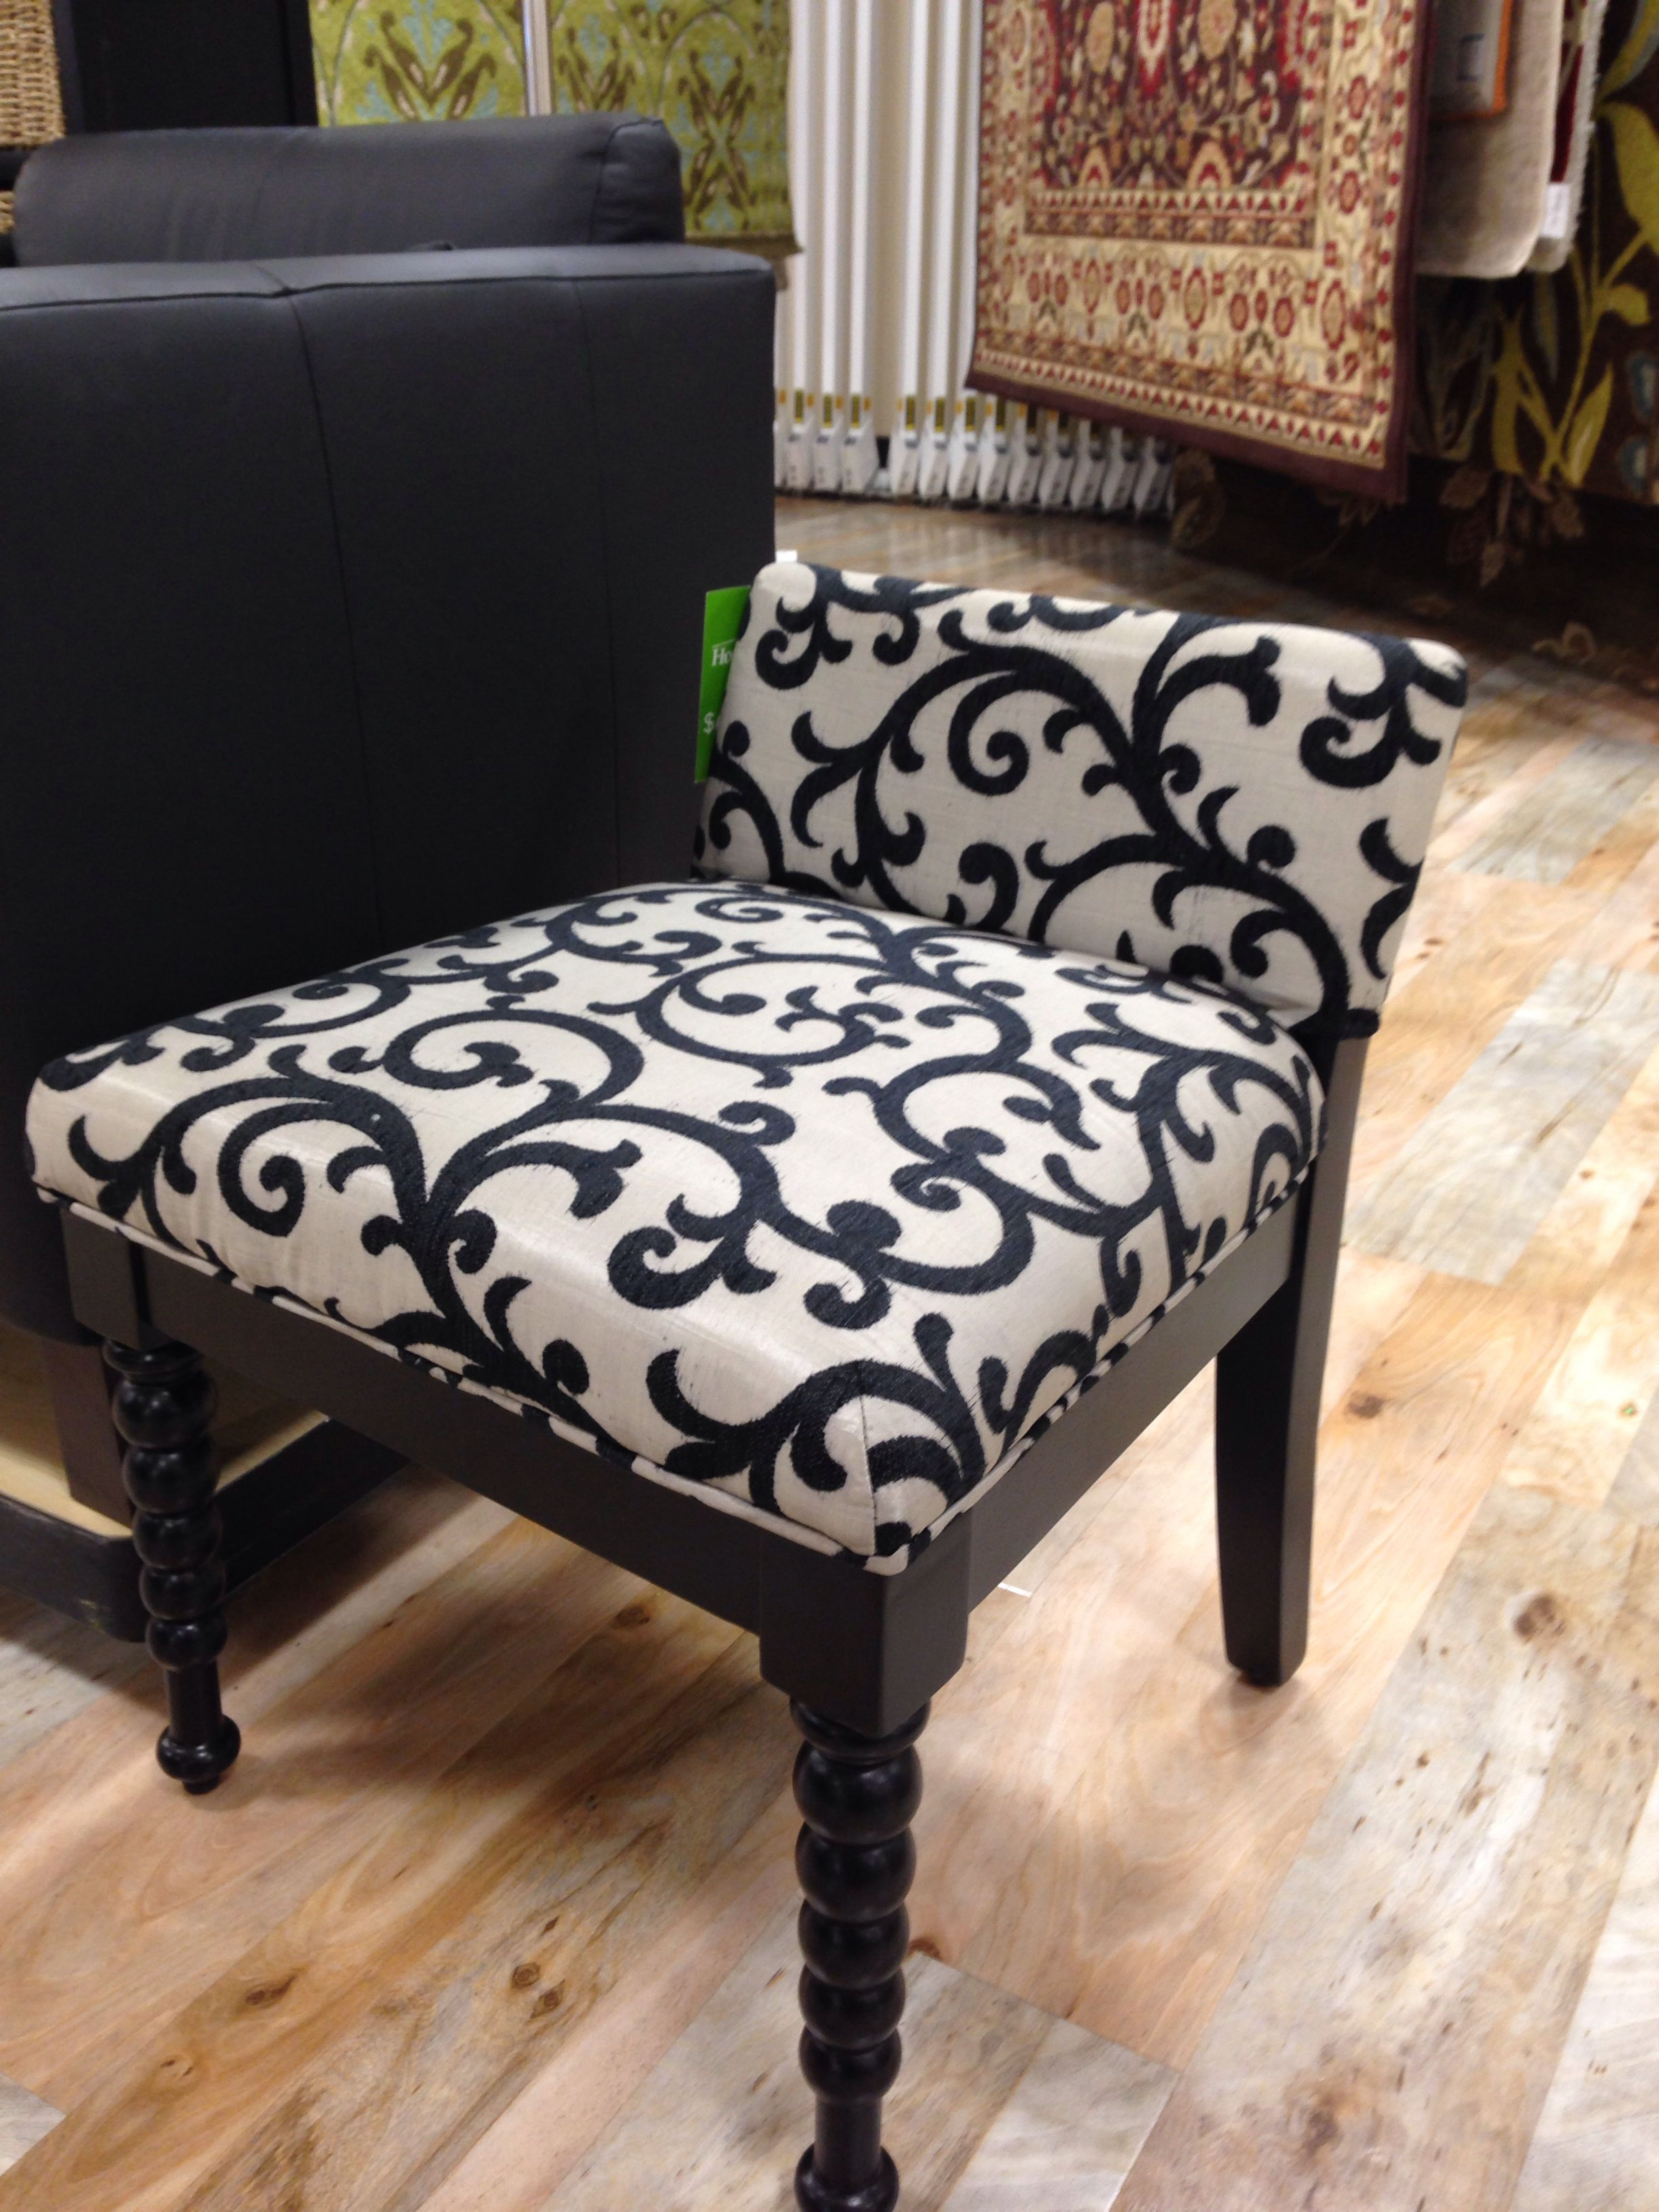 Chairs At Homegoods Snowman Chair Cover Dollar Tree Vanity Seen Store Pinterest